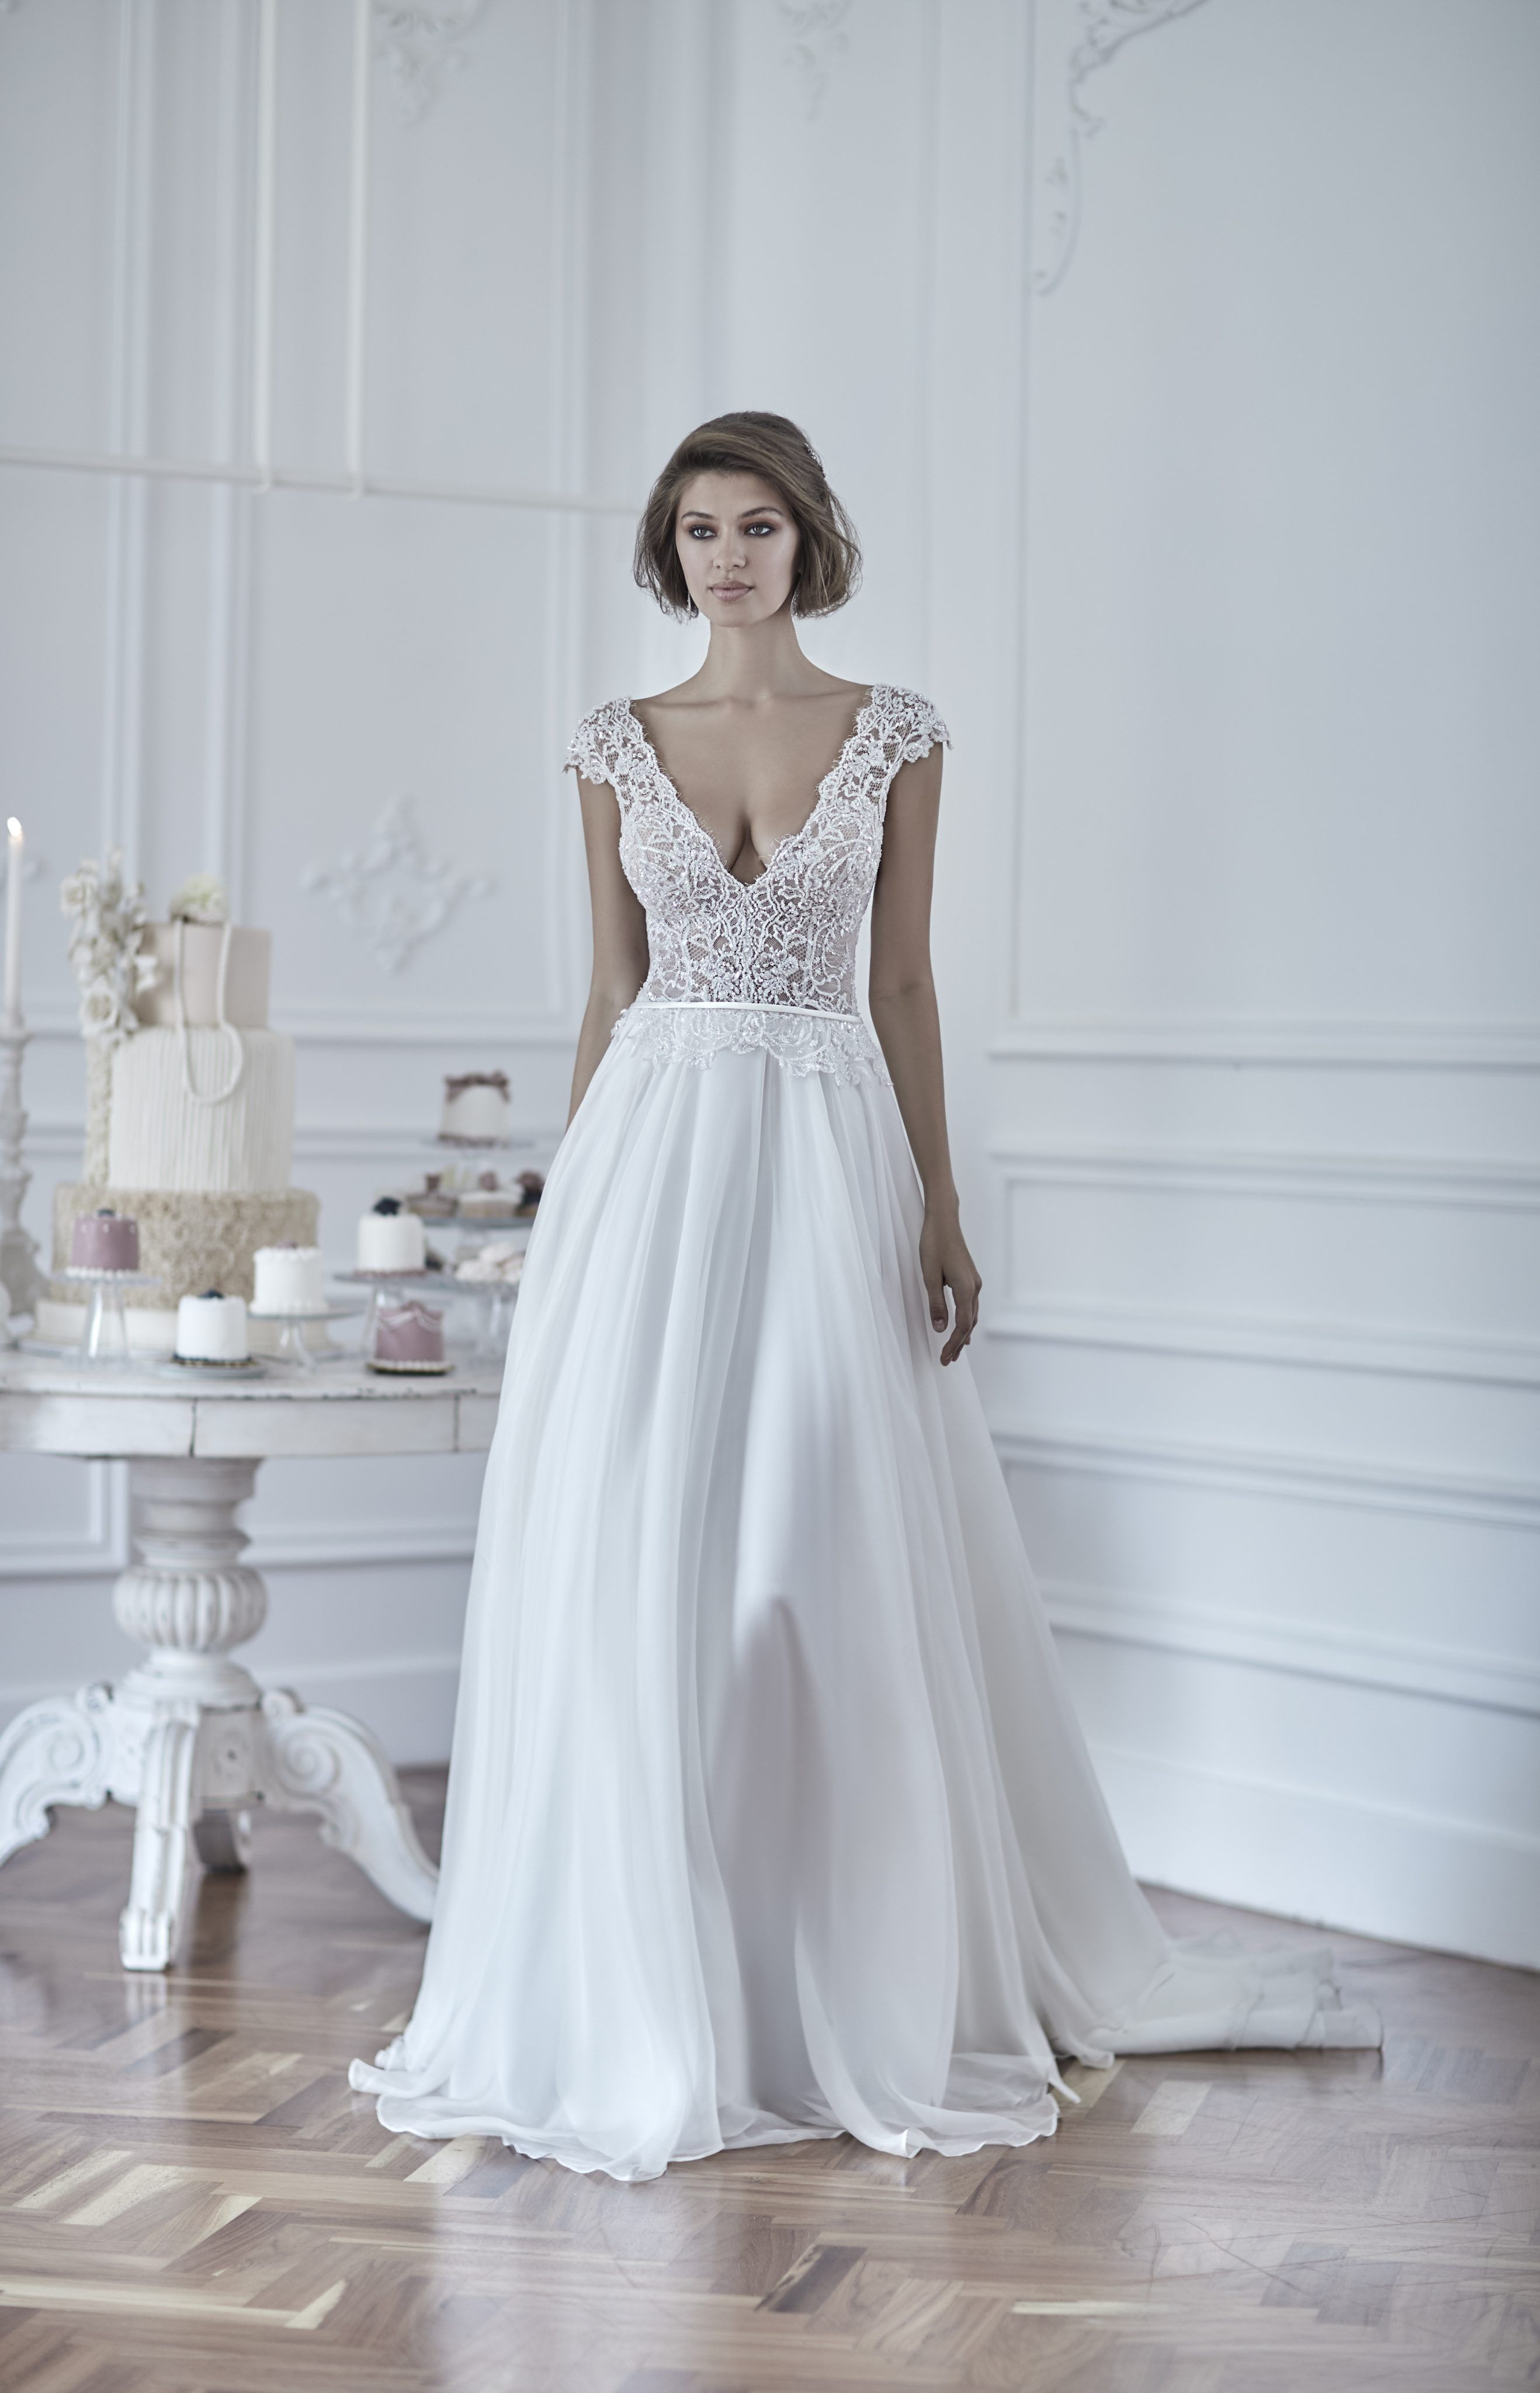 V-neck cap sleeve A-line gown with sheer embroidered corset bodice ...